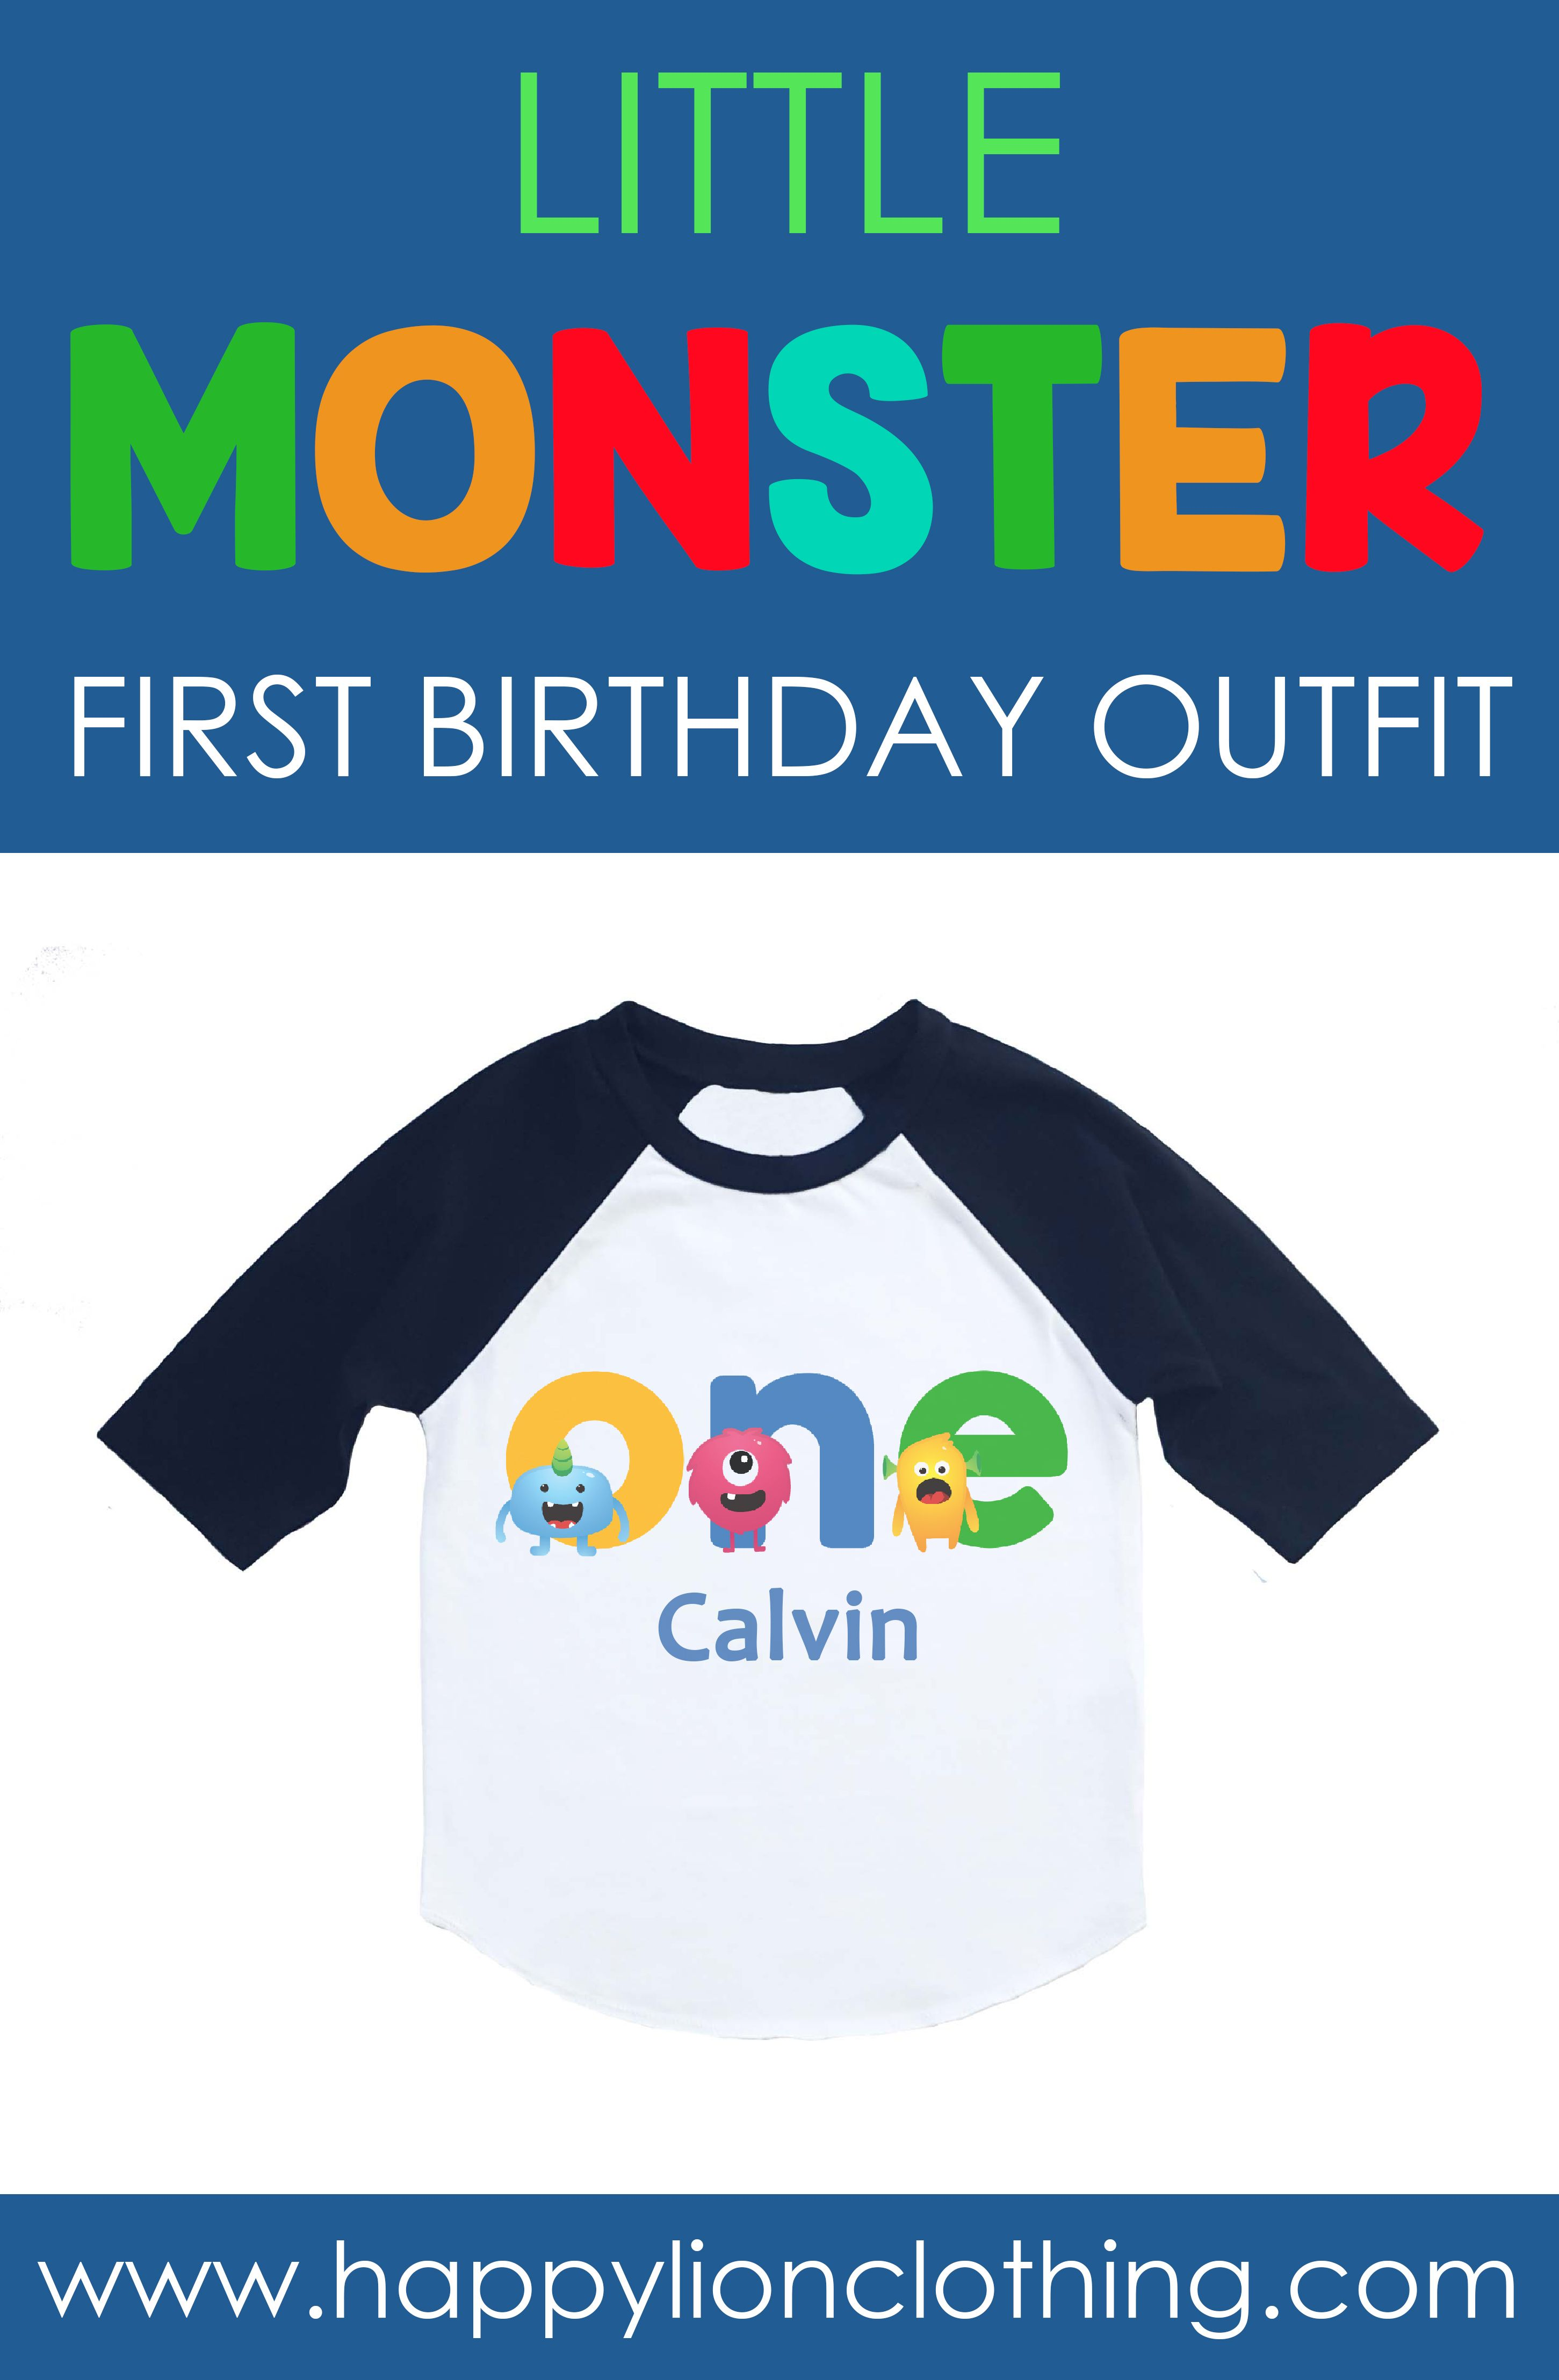 99cd4df6 Looking for monster 1st birthday ideas?This personalized little monster  shirt would make the perfect